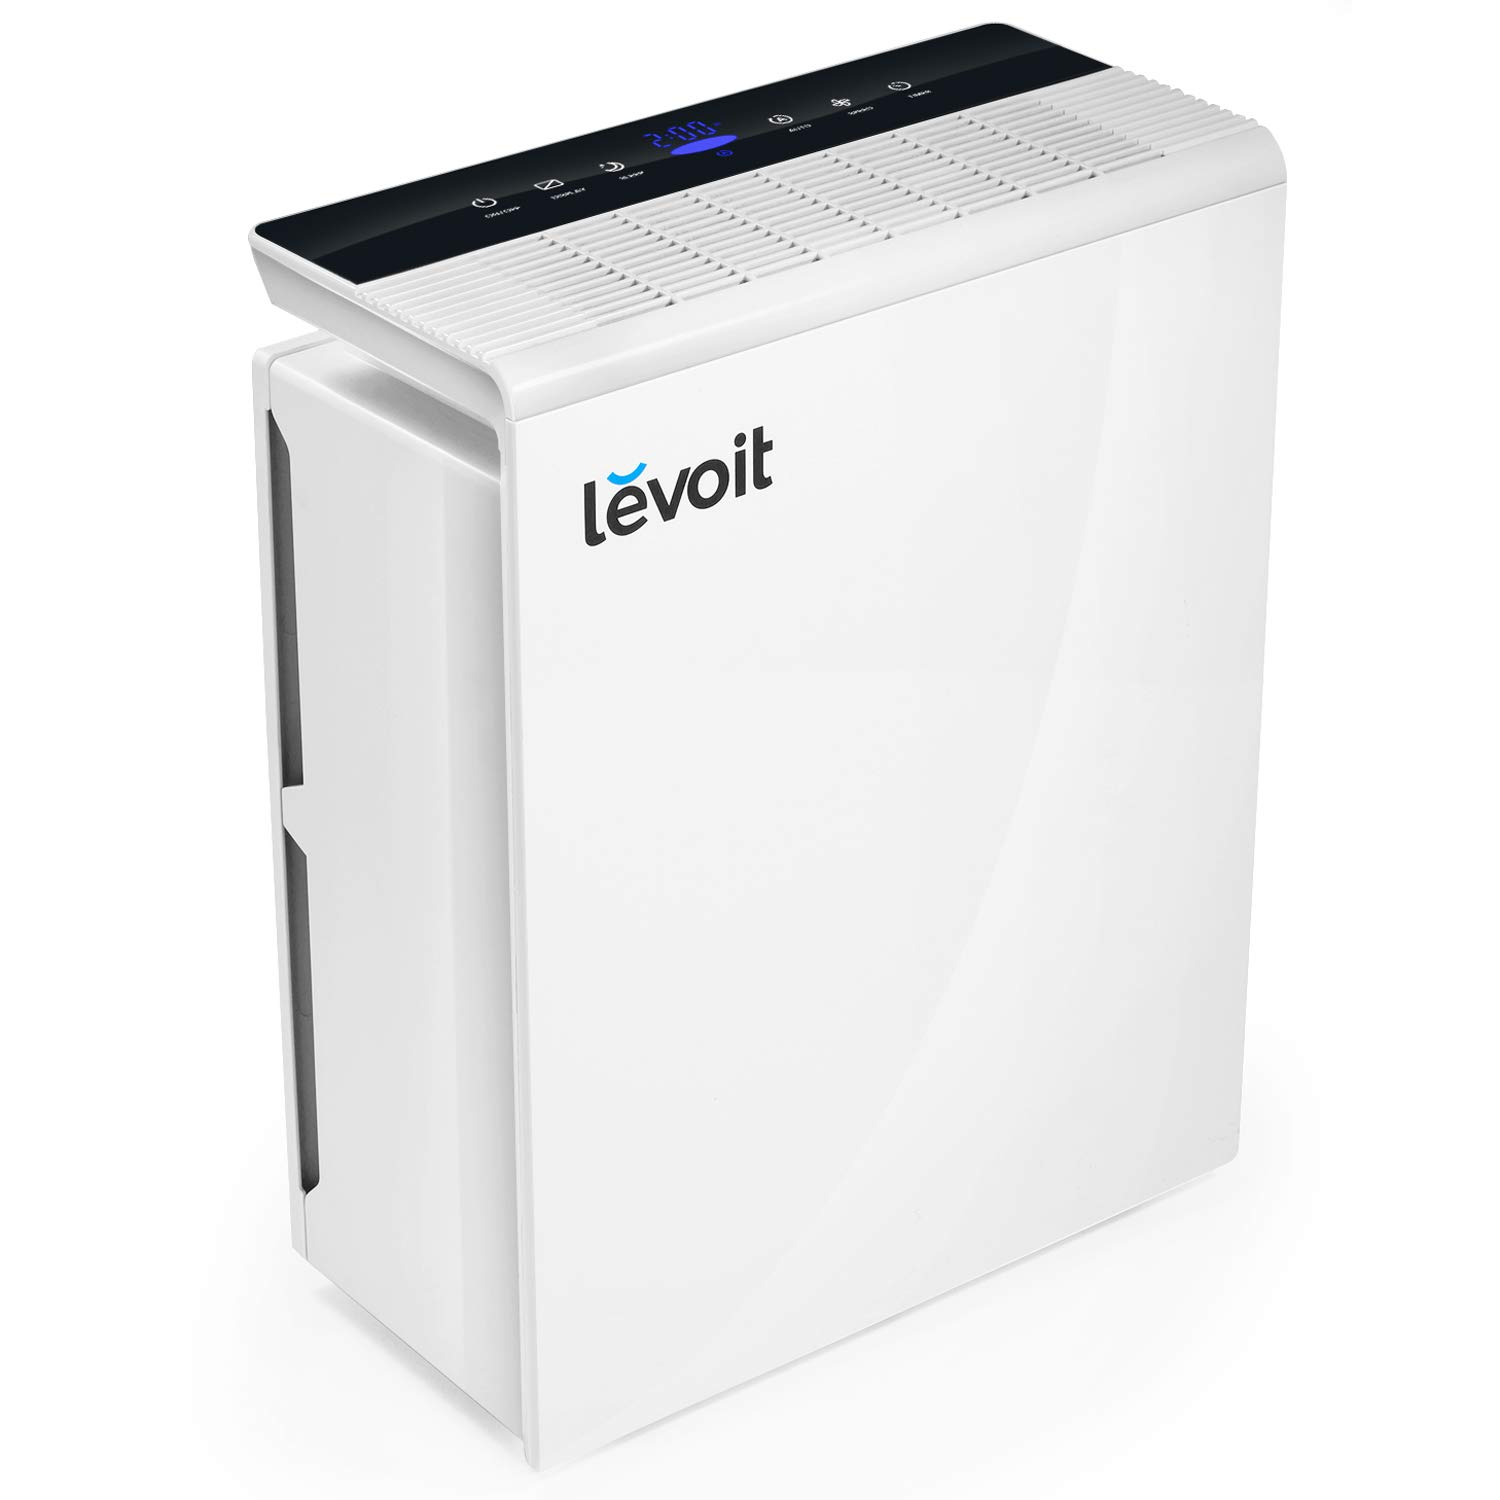 LEVOIT Air Purifier for Home with True HEPA Filter, Air Cleaner for Large Room, Allergies, Pets, Smokers, Smoke, Dust, Odor Eliminator, Air Quality Monitor, Energy Star, 2-Year Warranty, LV-PUR131